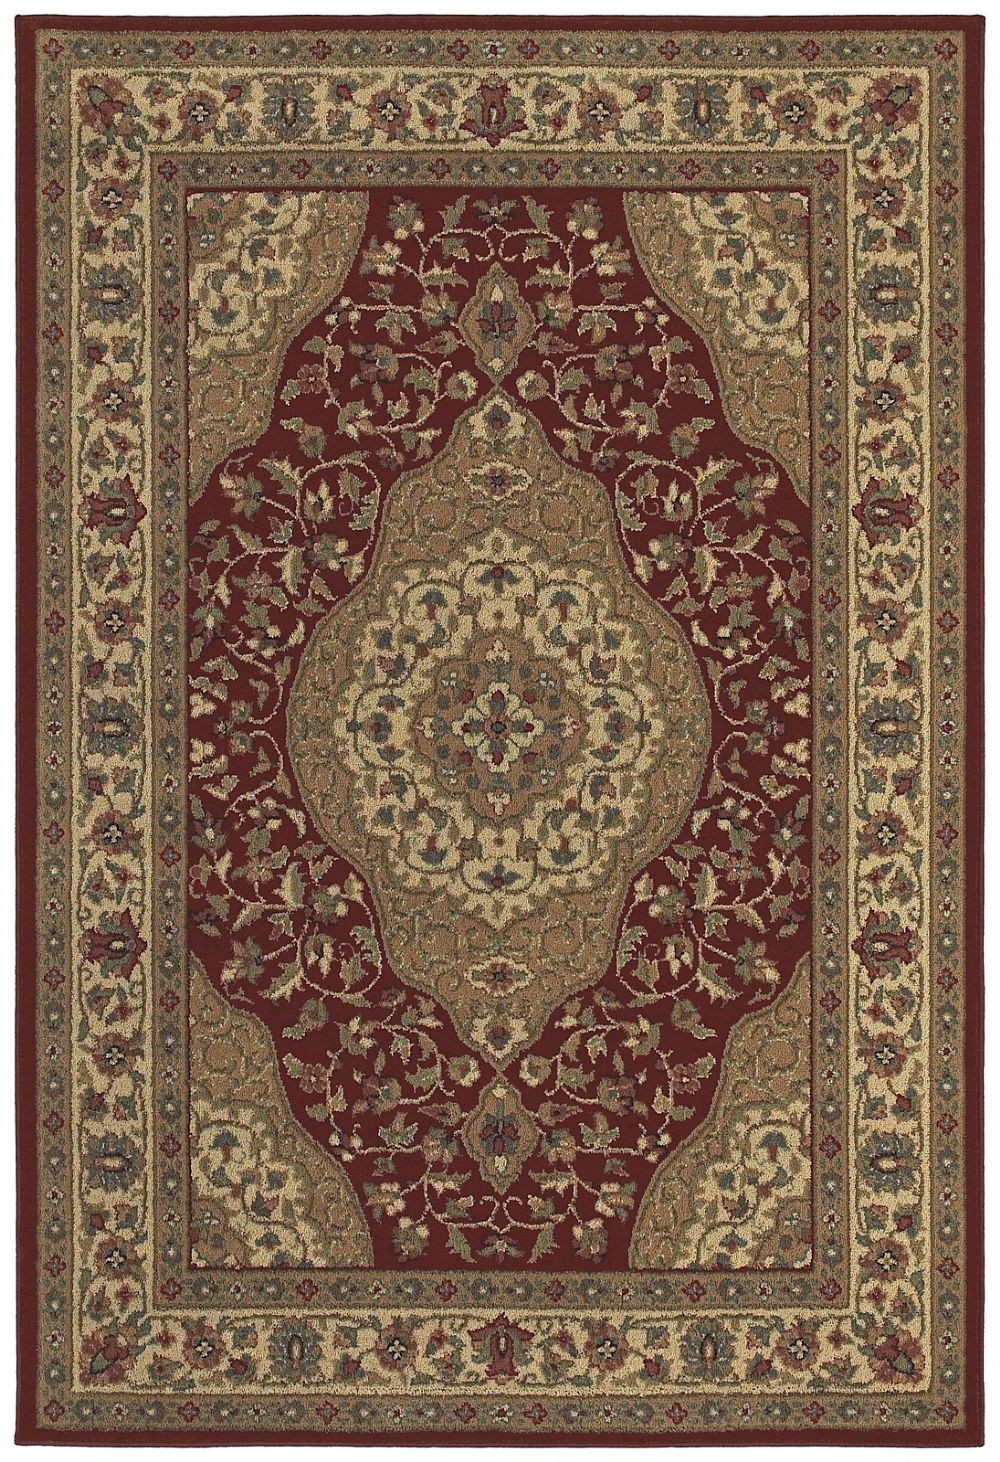 shaw concepts european area rug collection